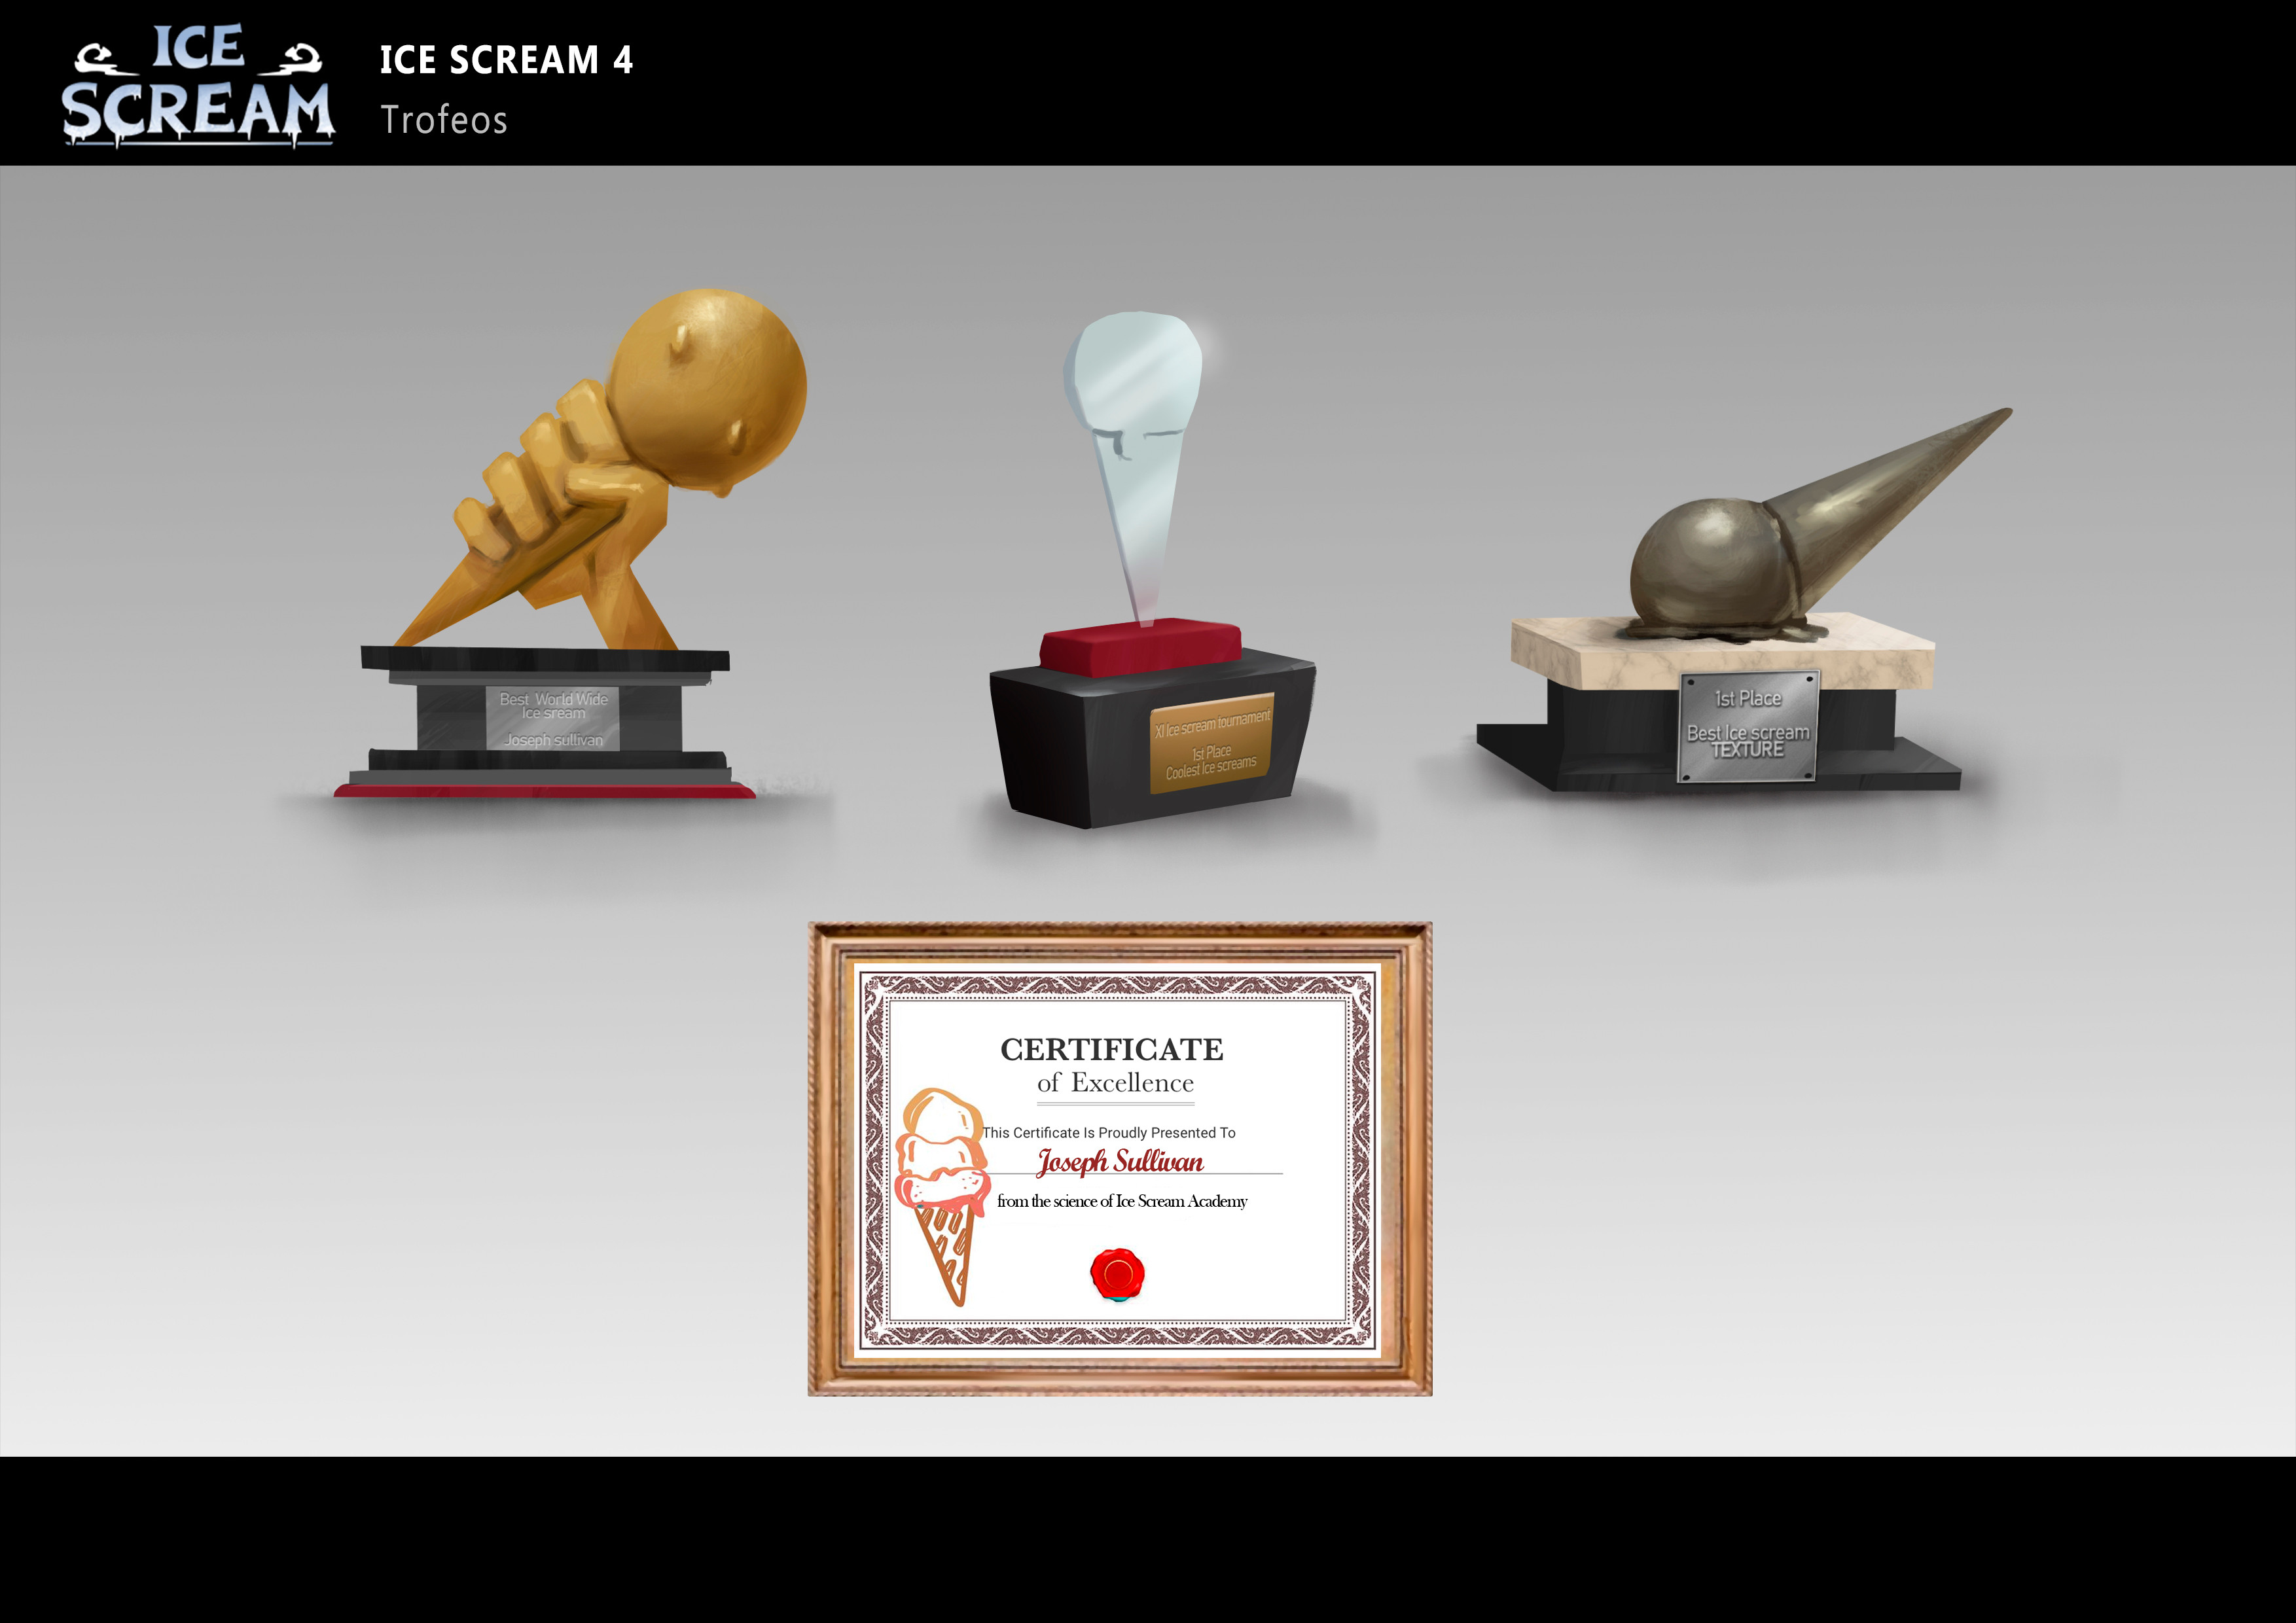 Some trophies from the hall of fame of Joseph´s museum